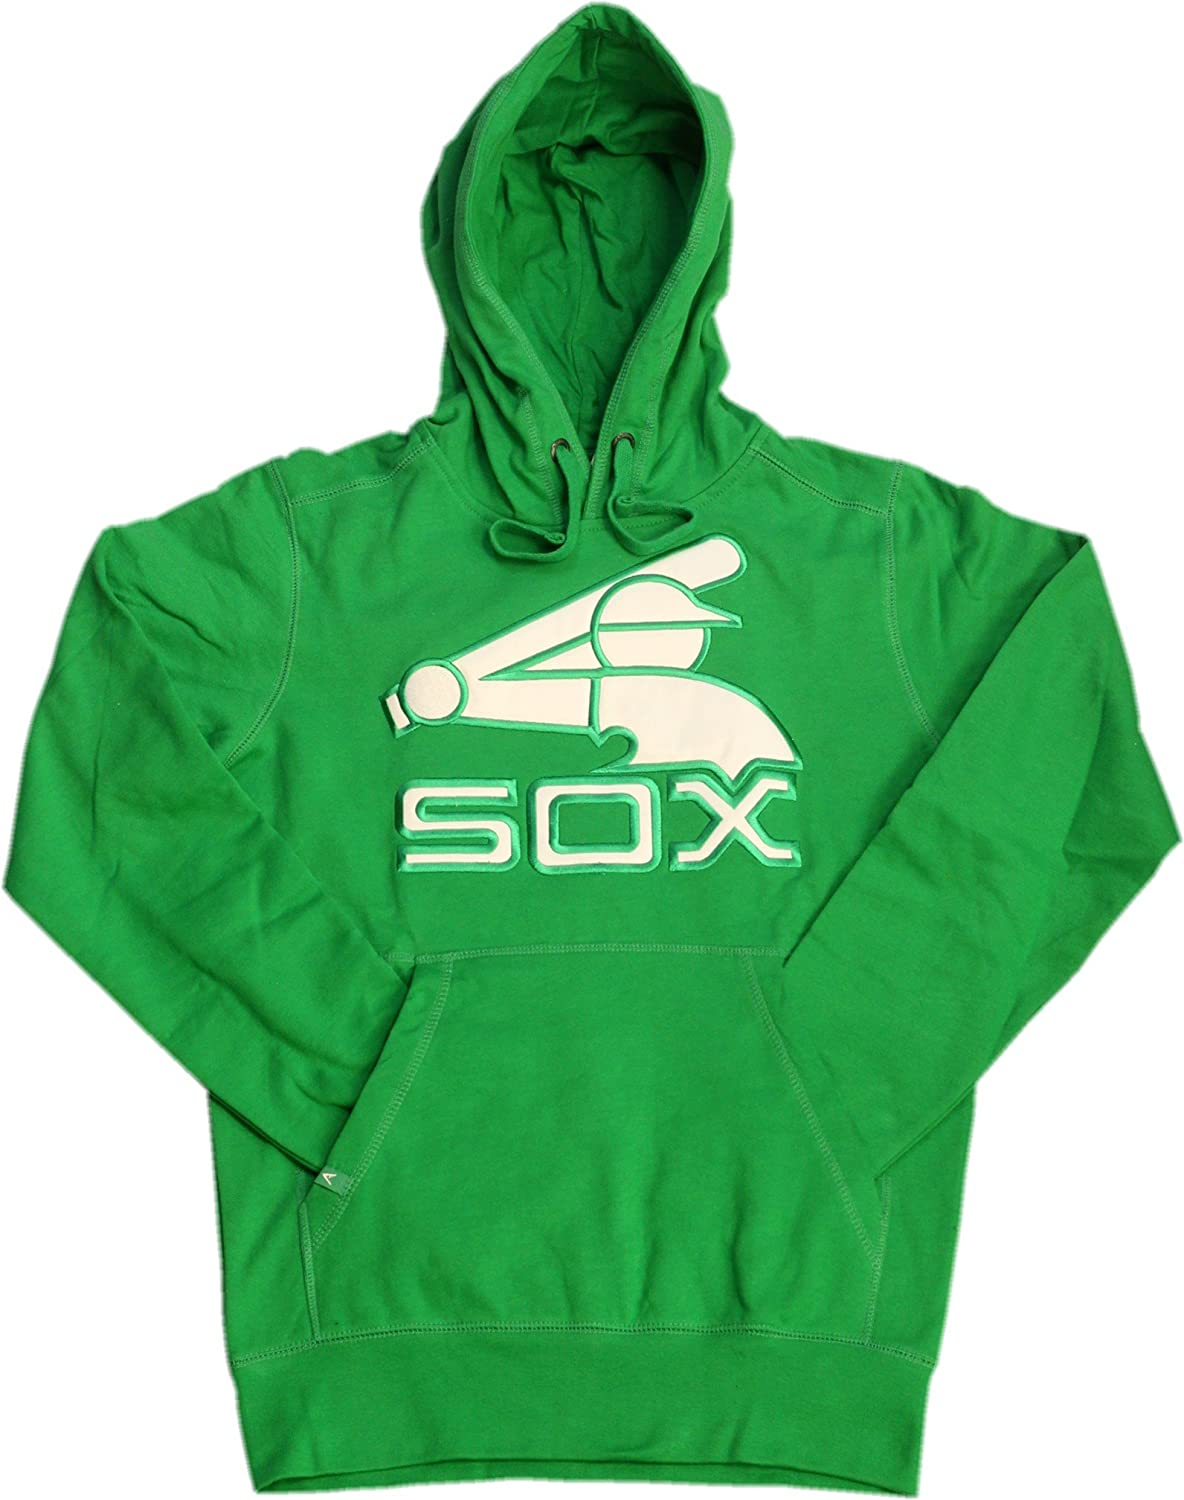 best website 75b70 74a6b Amazon.com : Chicago White Sox Green Signature Pullover ...